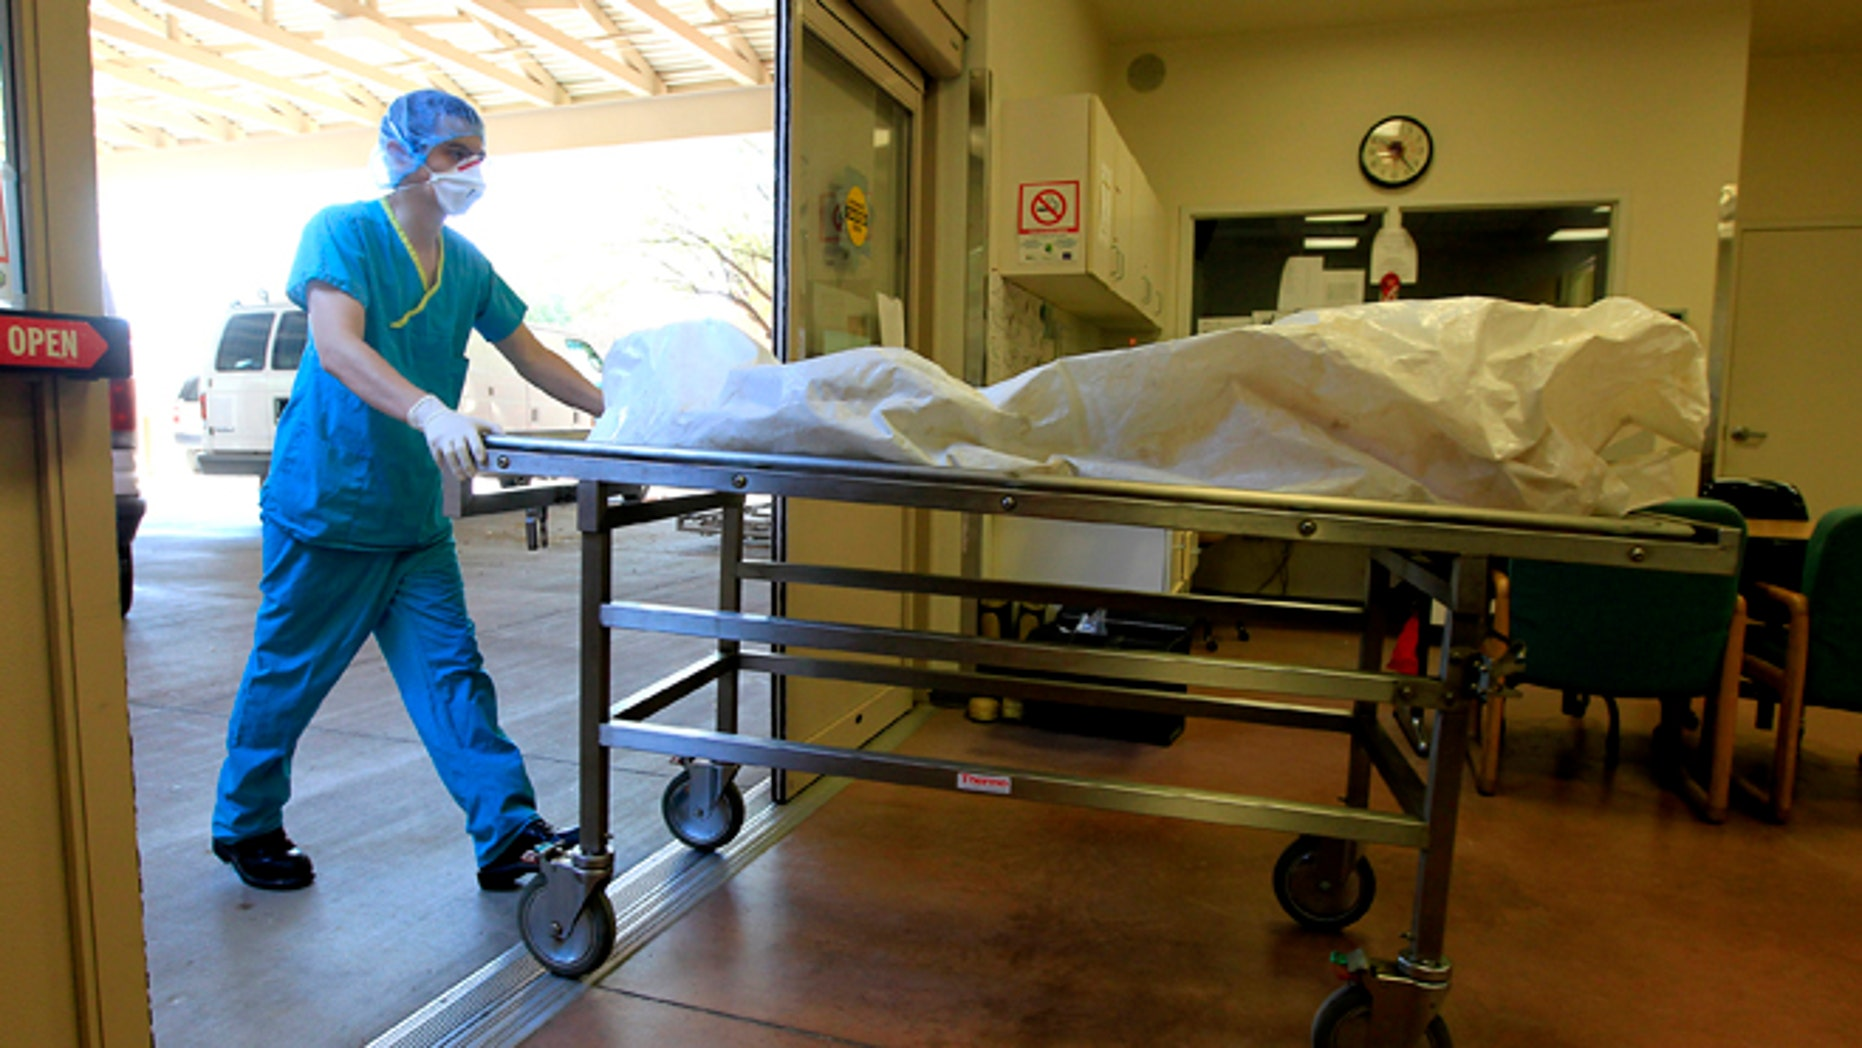 Aug. 10, 2012: In this photo, a morgue staff member brings in the body of a suspected illegal immigrant found in the Arizona desert, at the Pima County morgue in Tucson, Ariz.